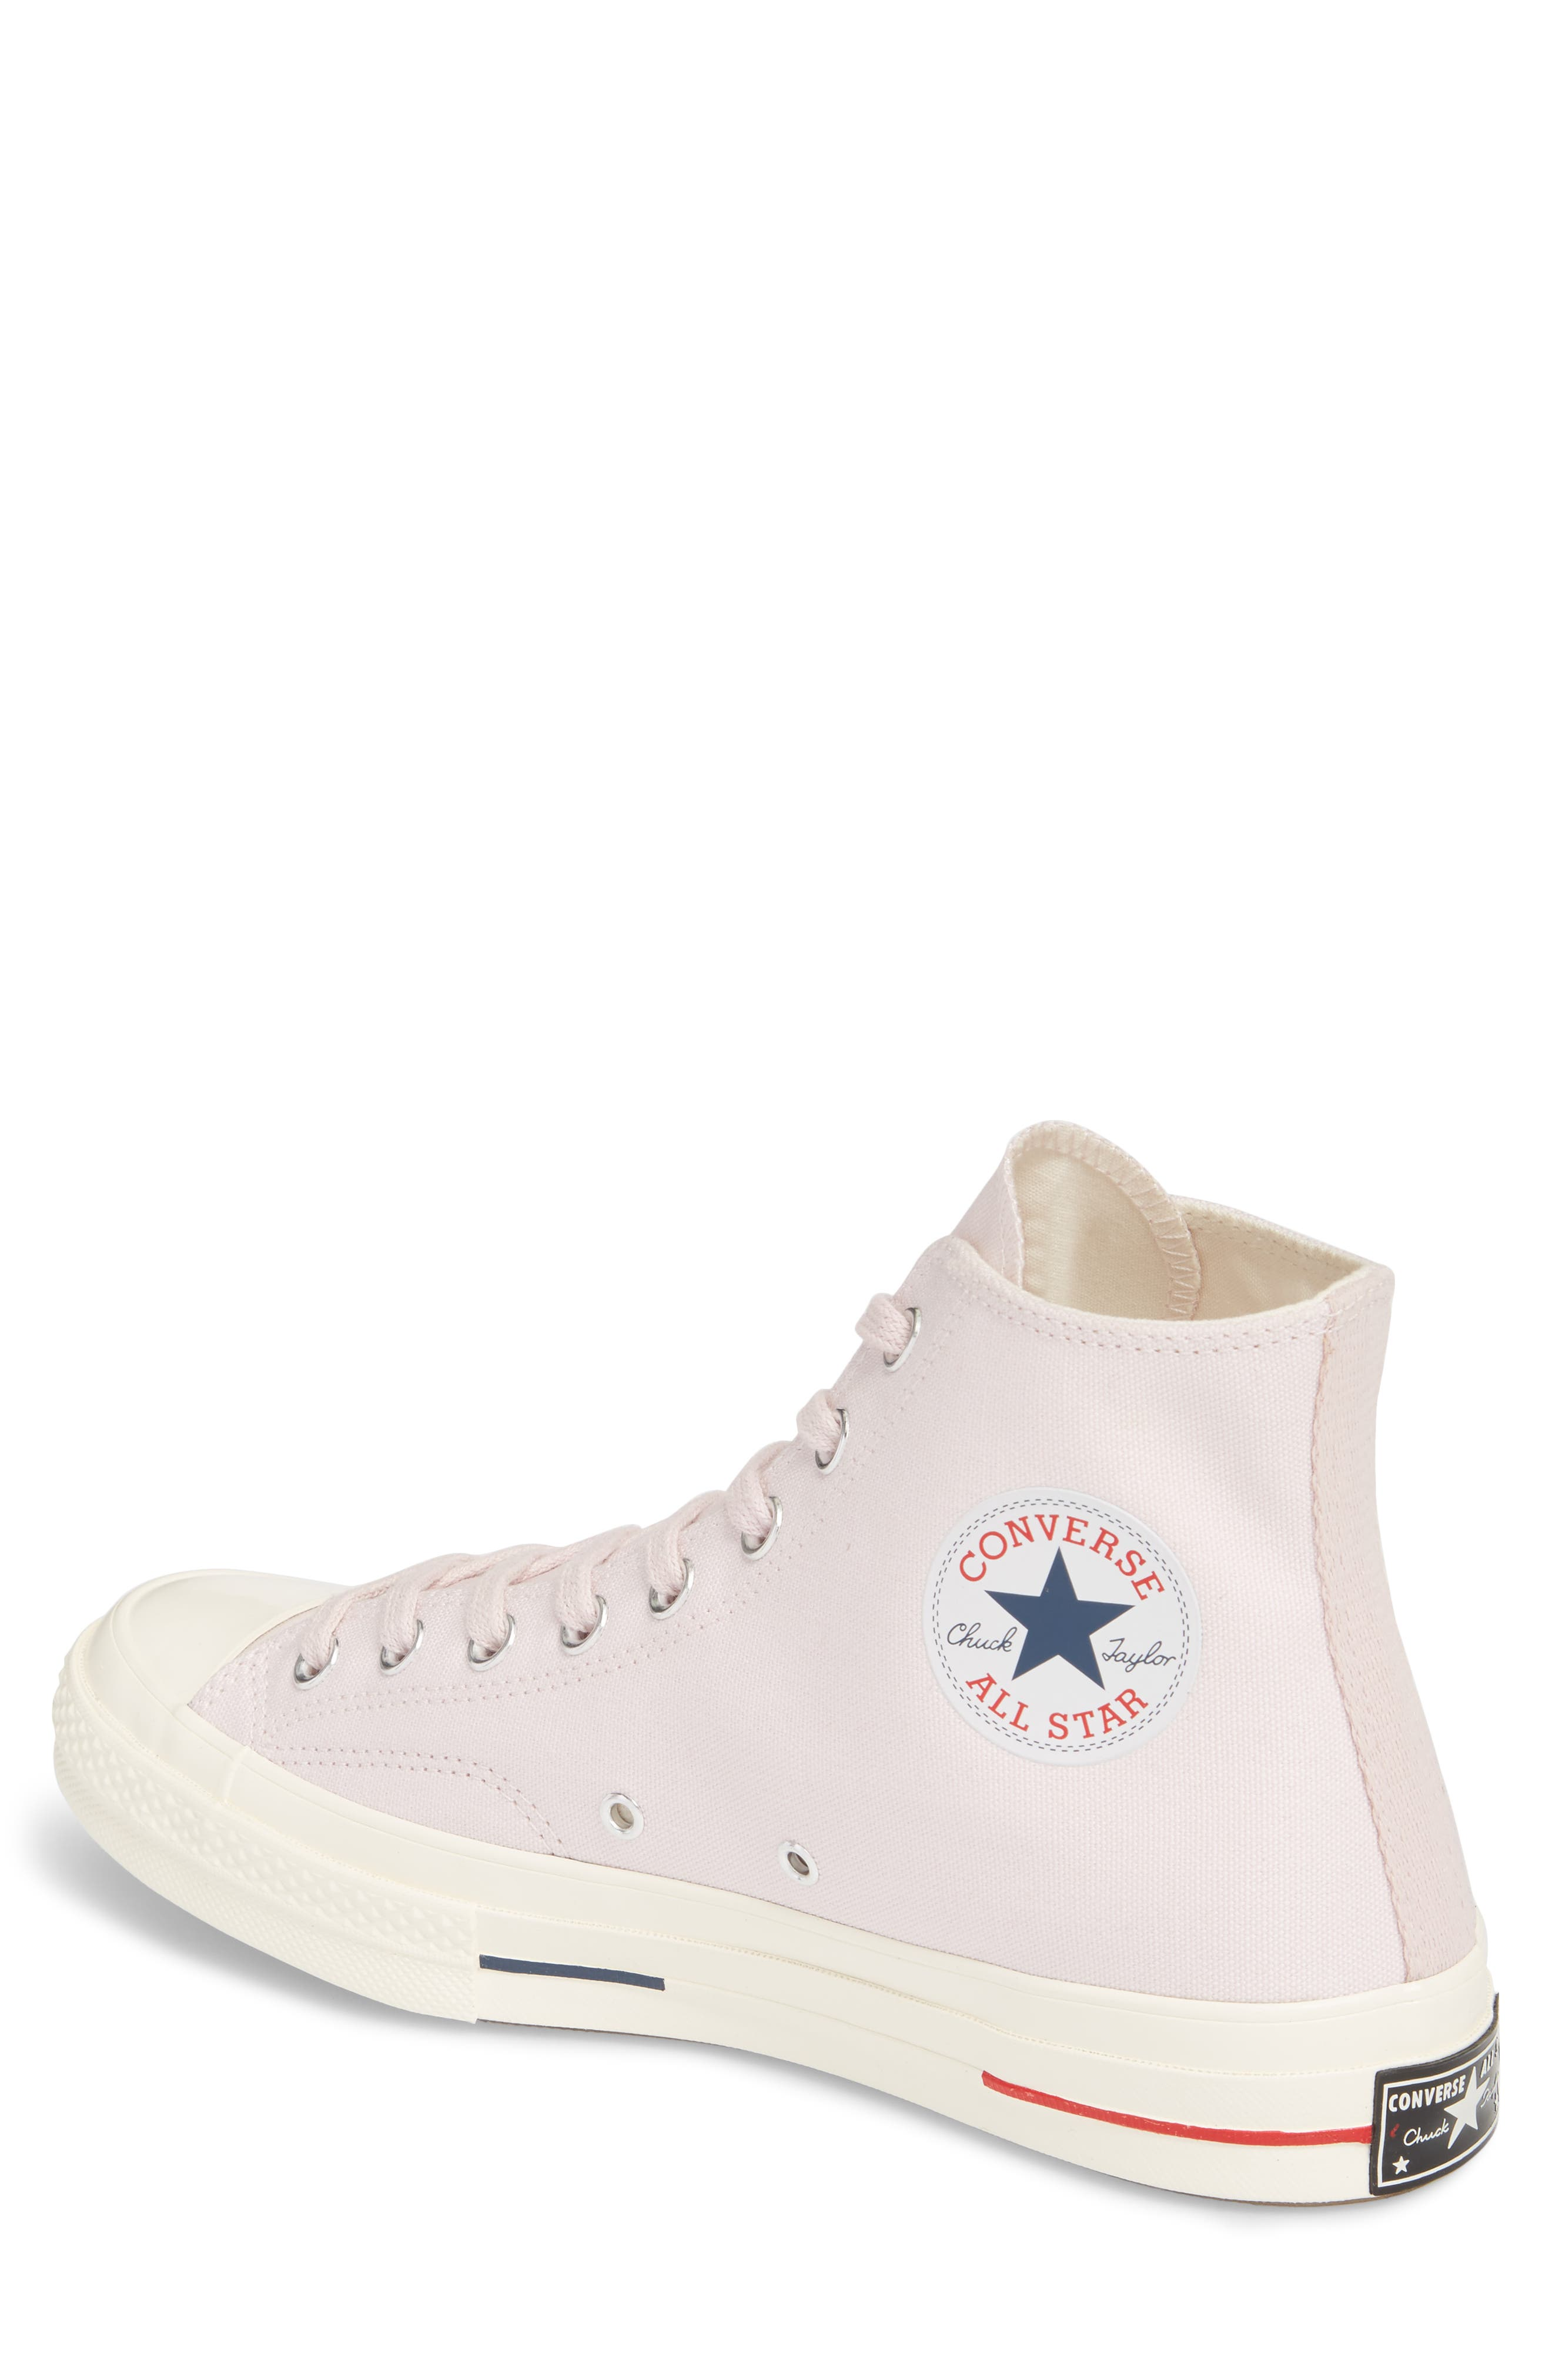 Chuck Taylor<sup>®</sup> All Star<sup>®</sup> '70 Heritage High Top Sneaker,                             Alternate thumbnail 2, color,